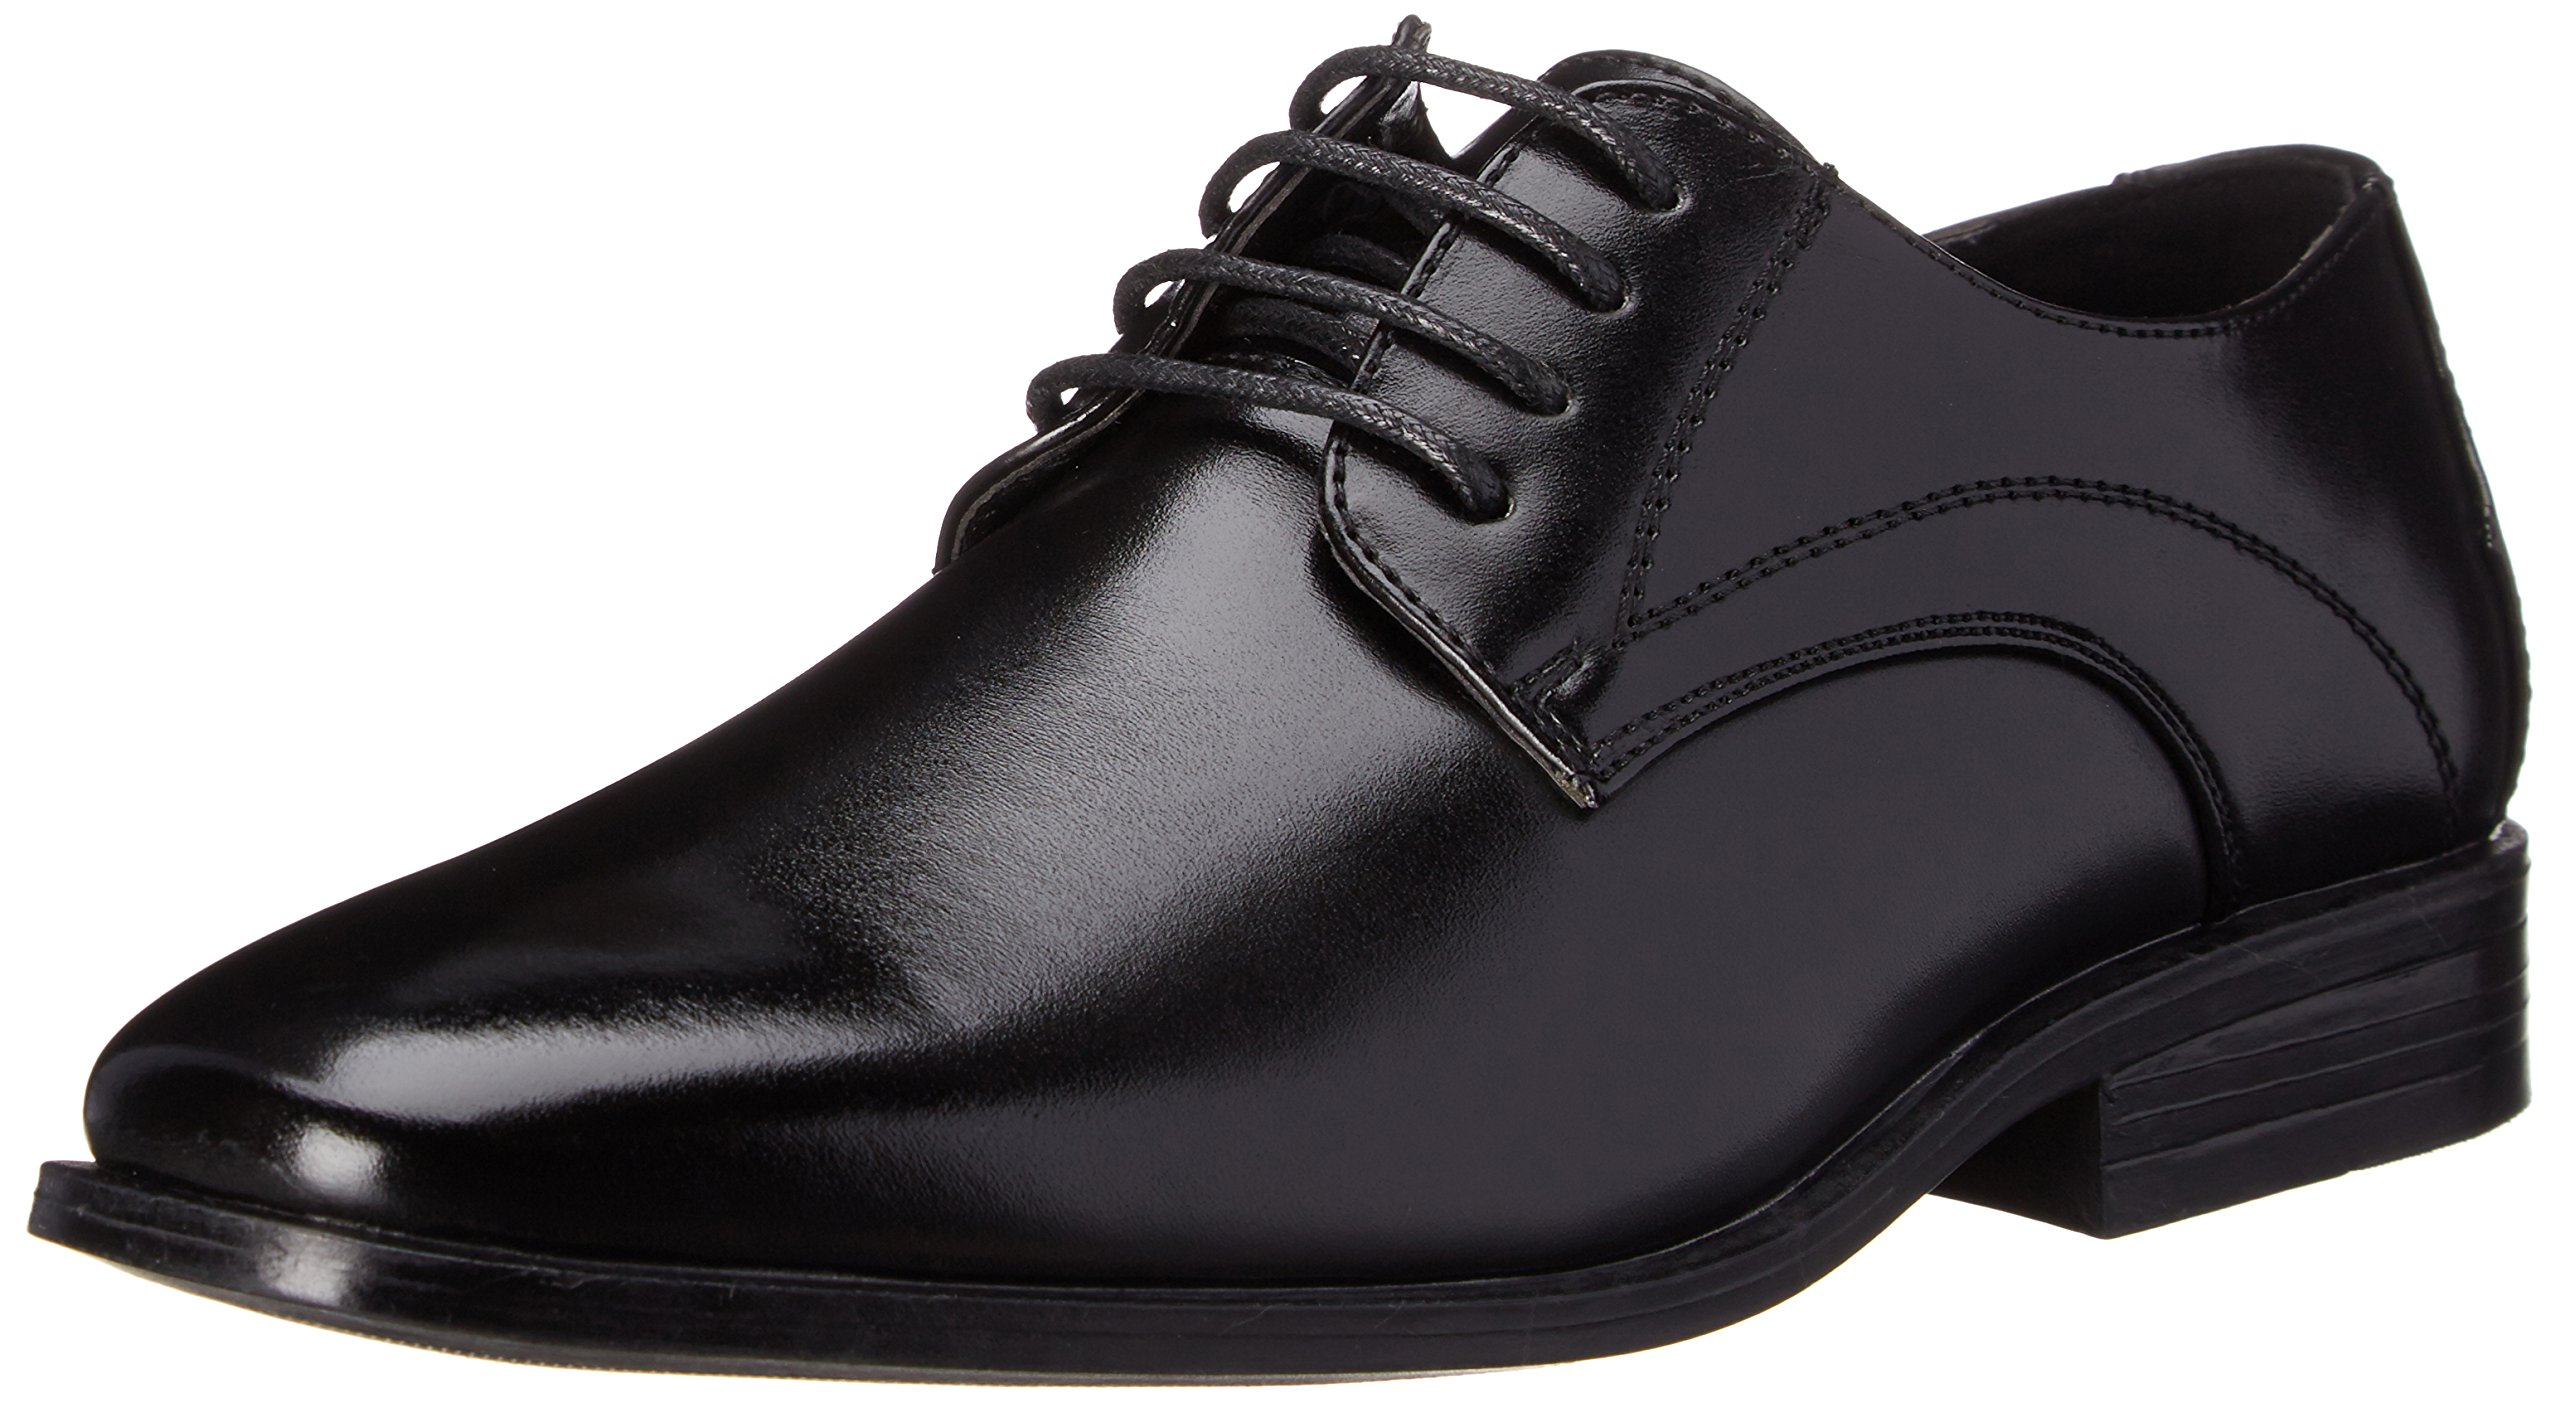 Stacy Adams Carmichael Plain Toe Lace-up Uniform Oxford Dress Shoe (Little Kid/Big Kid),Black,4 M US Big Kid by STACY ADAMS (Image #1)